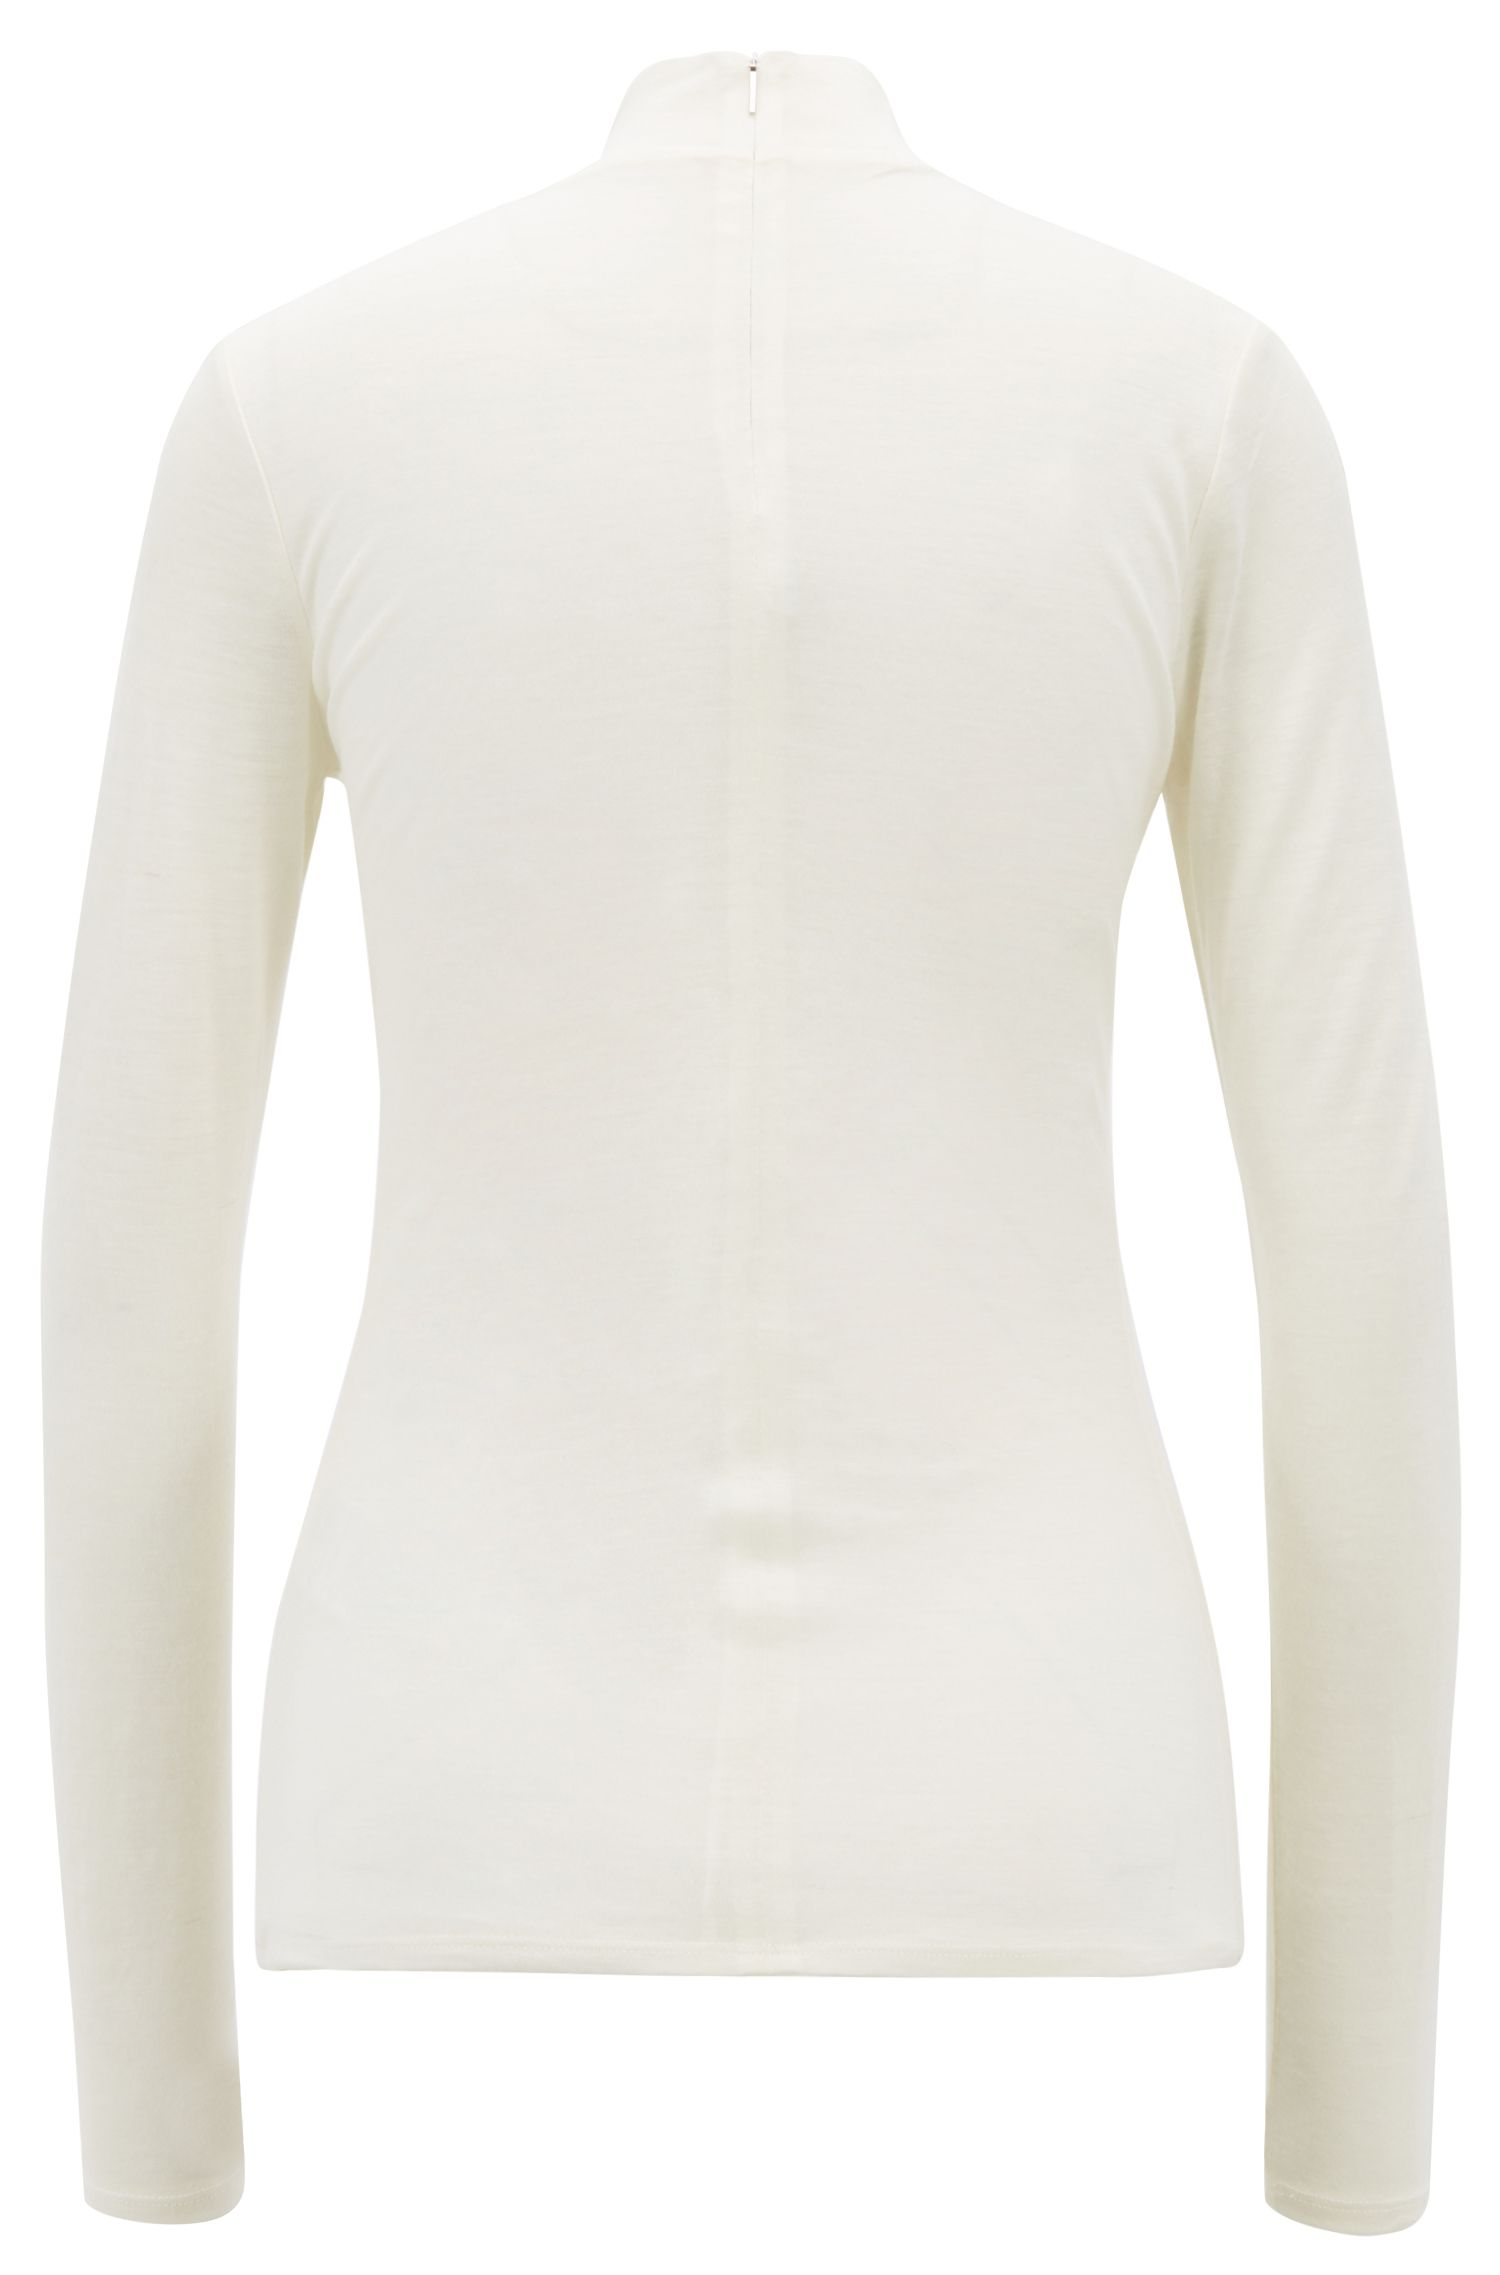 Turtleneck top in lightweight fabric with lined body, Natural